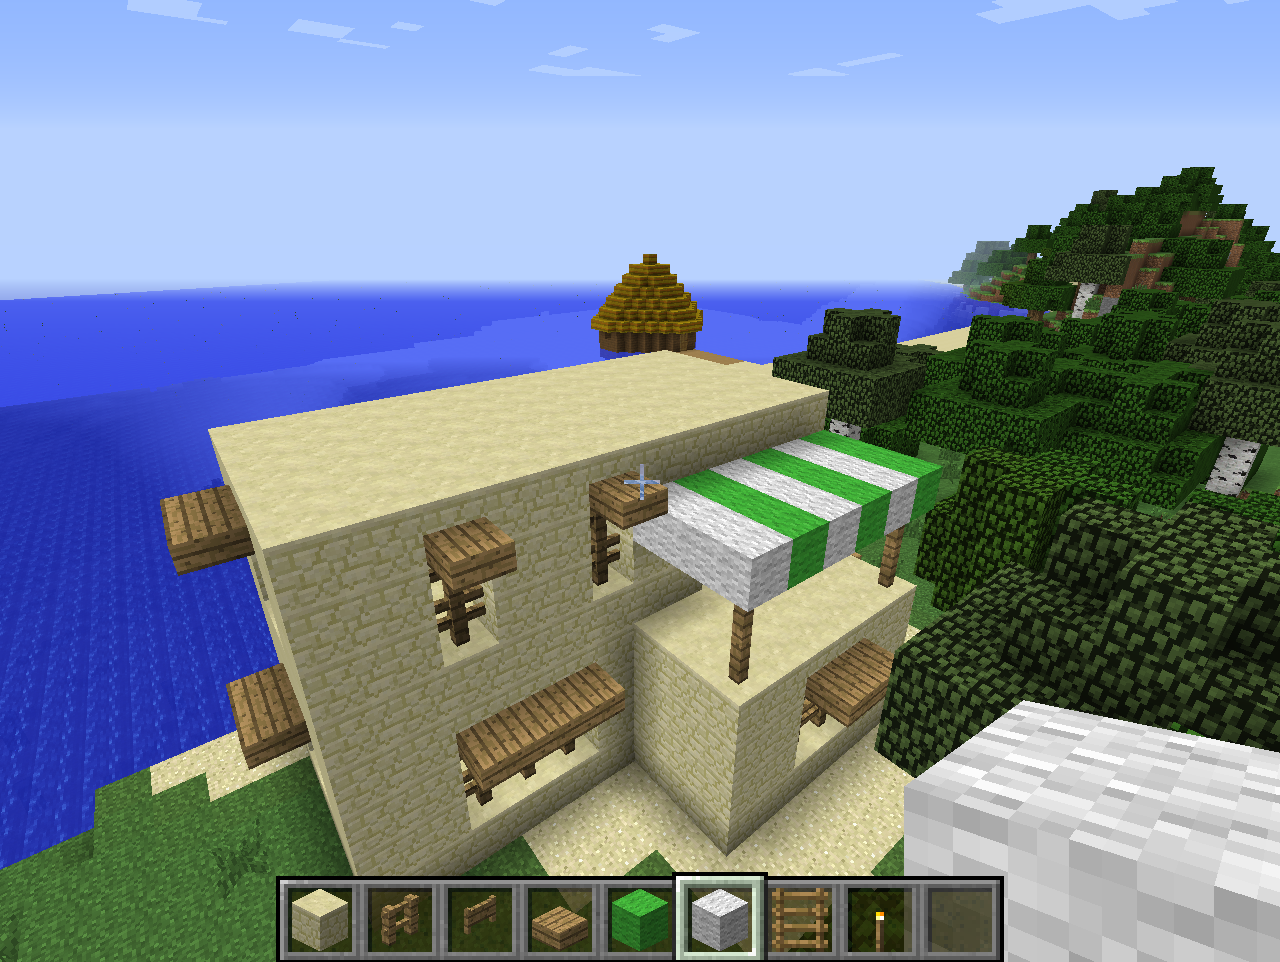 Minecraft comment cr er une maison arabique tr s - Maison simple a construire ...